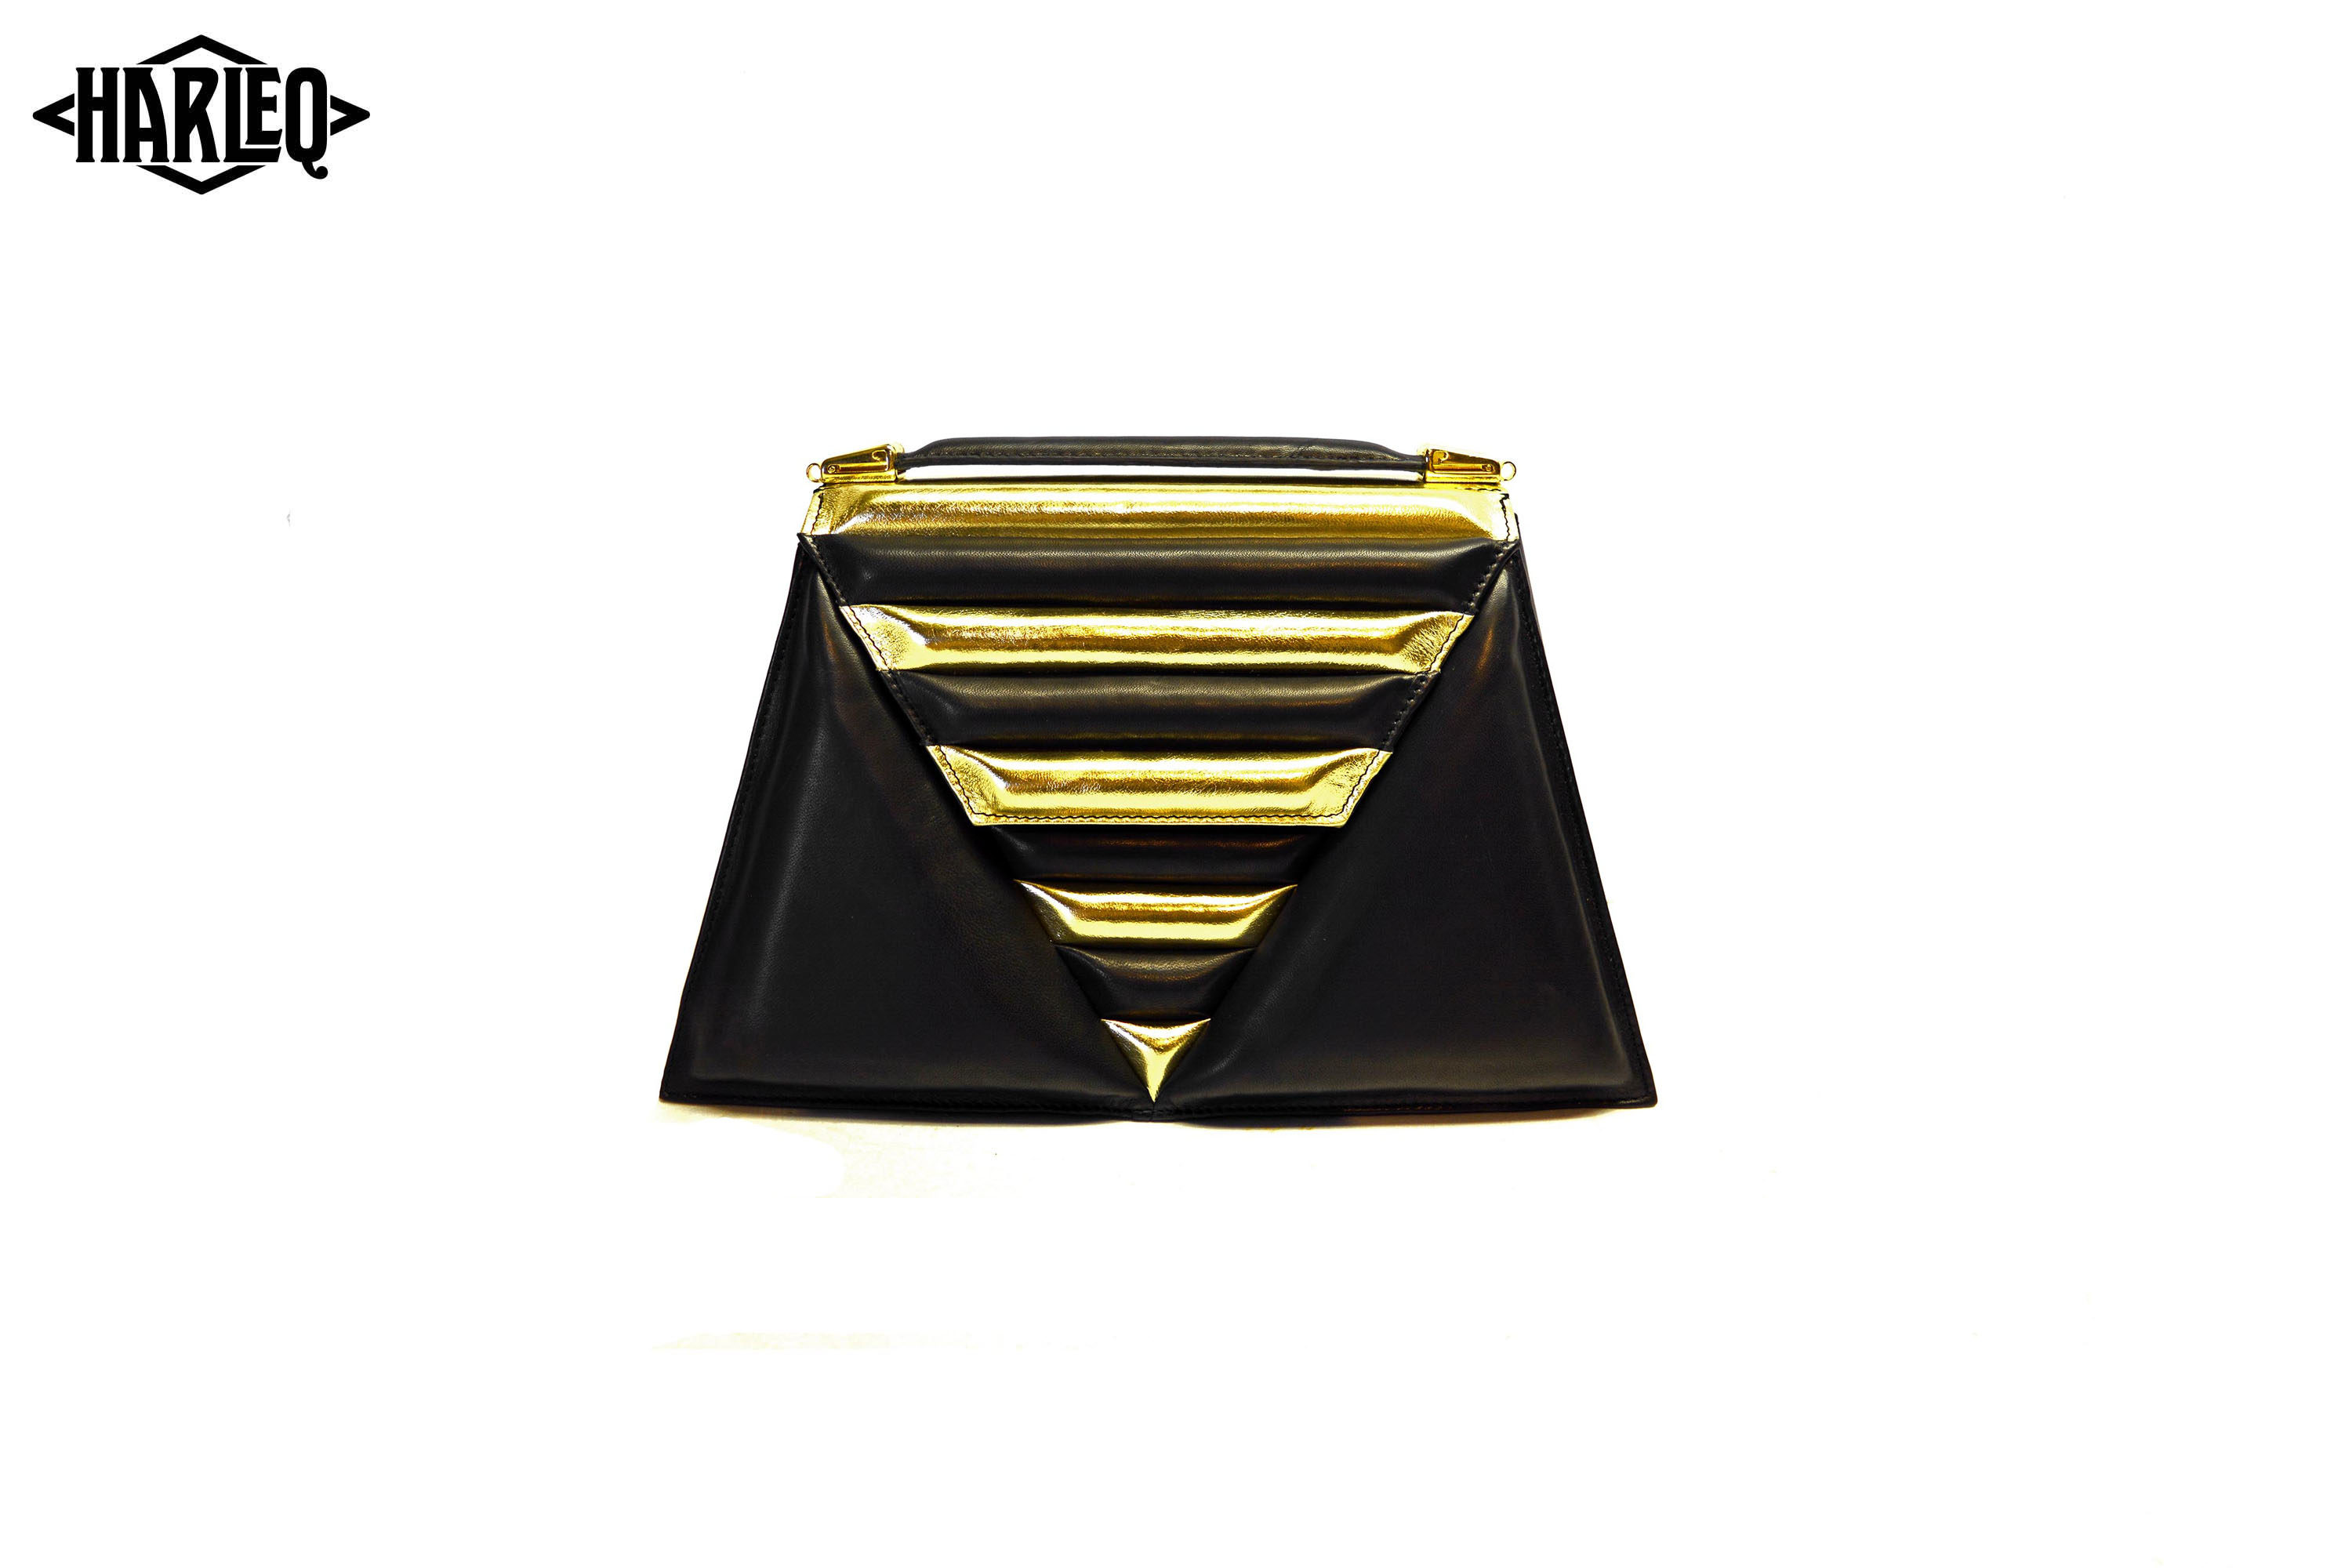 triangles luxury bag black gold leathers